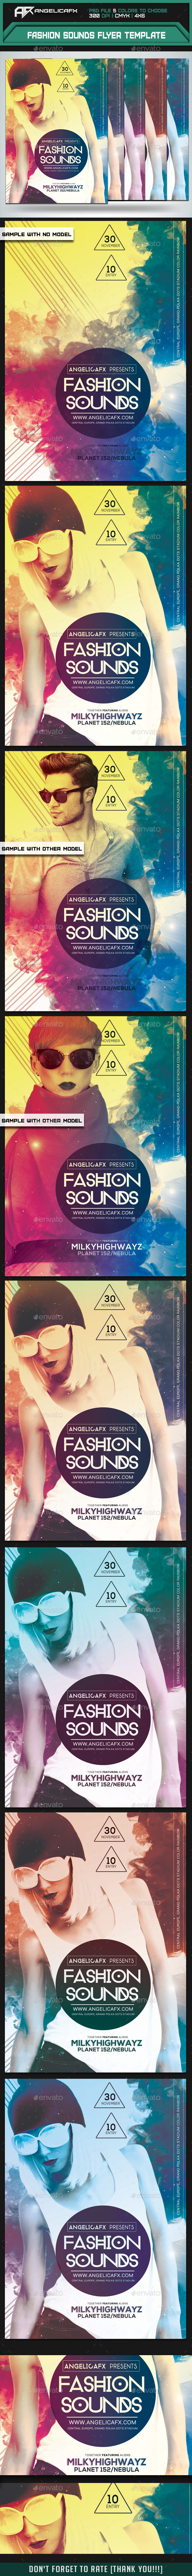 GraphicRiver Fashion Sounds Flyer Template 8864197